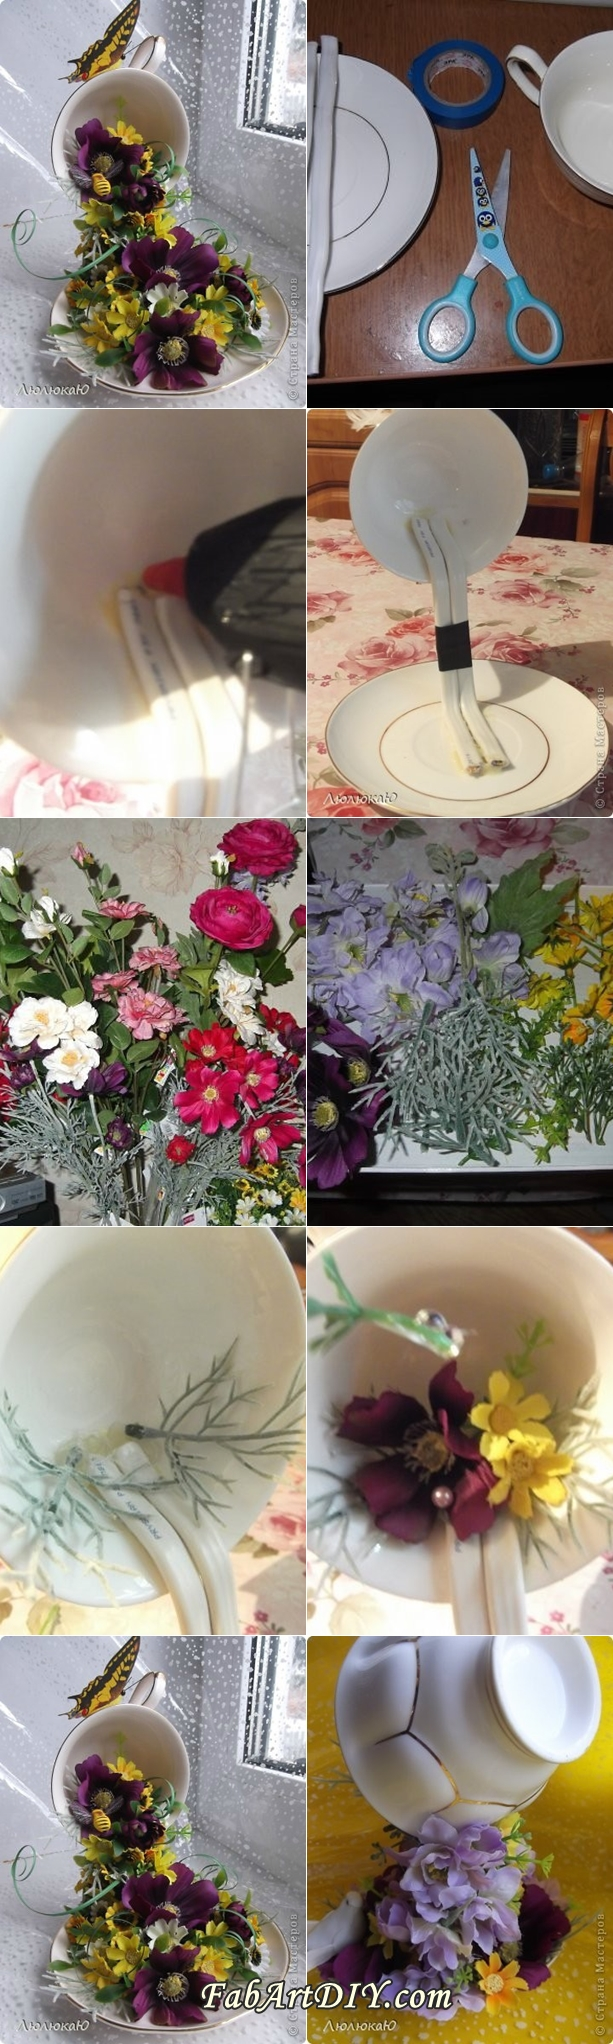 flower pouring cup tutorials